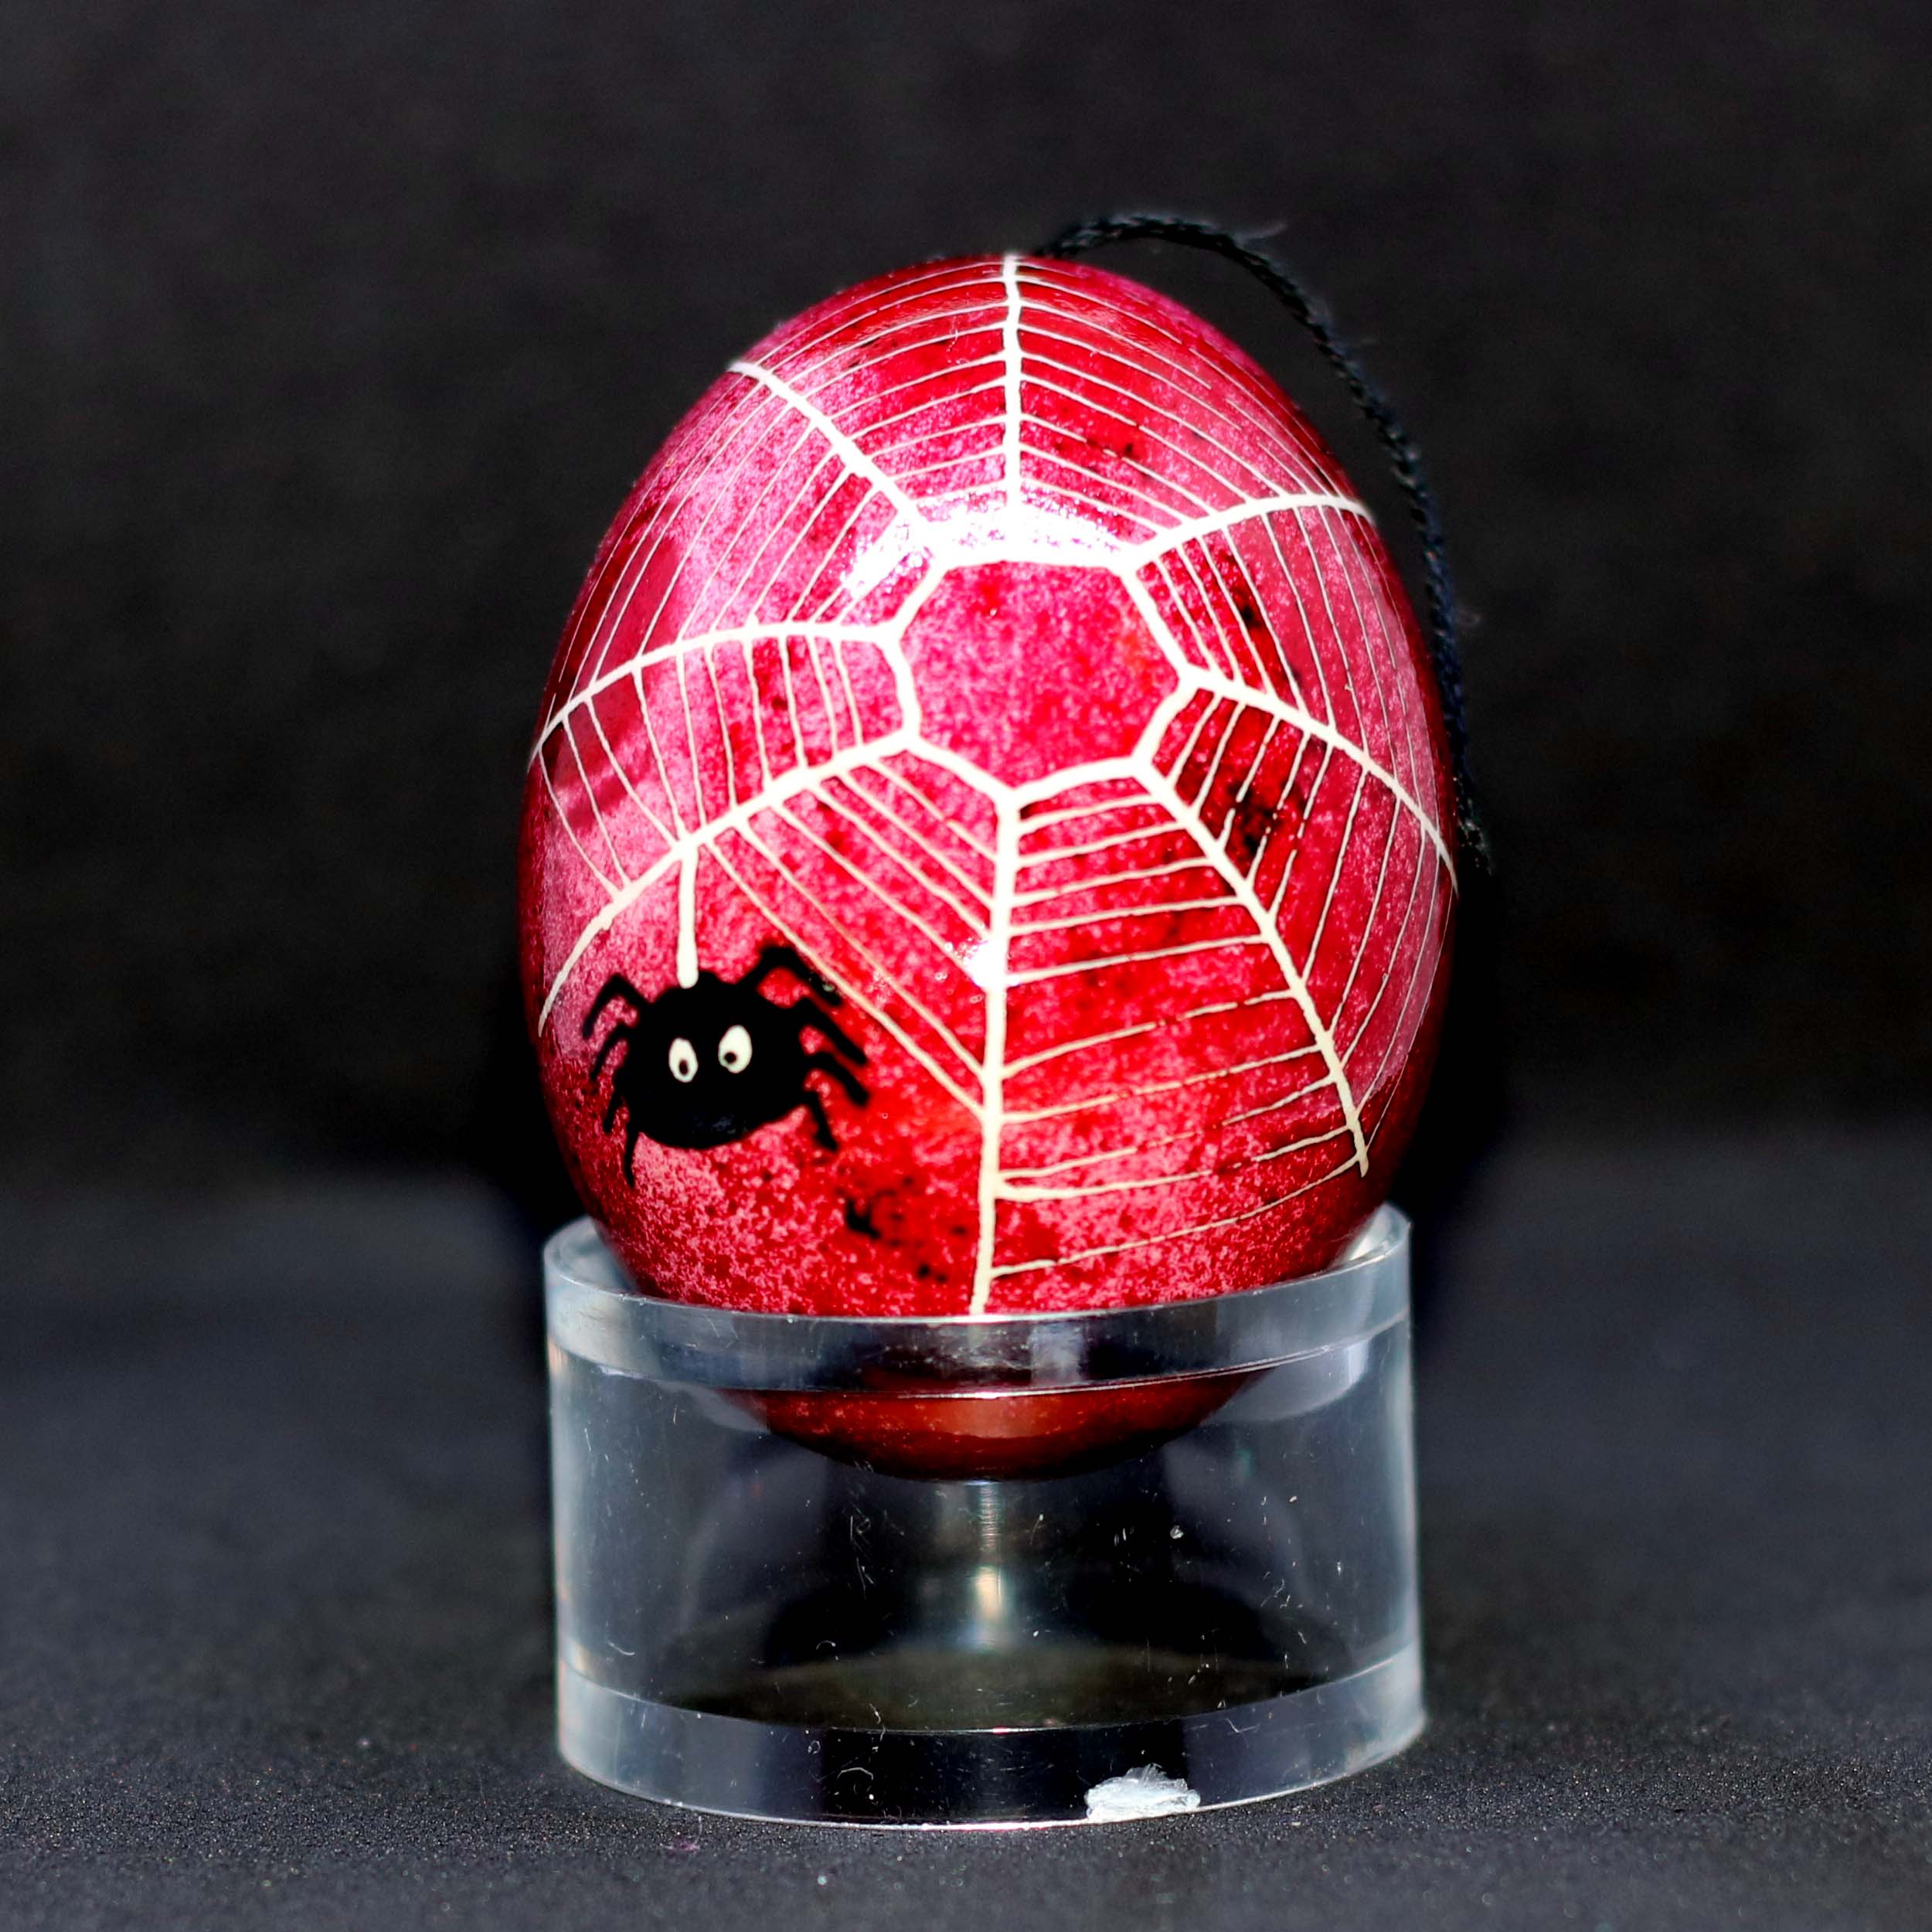 Spiders web egg, red background